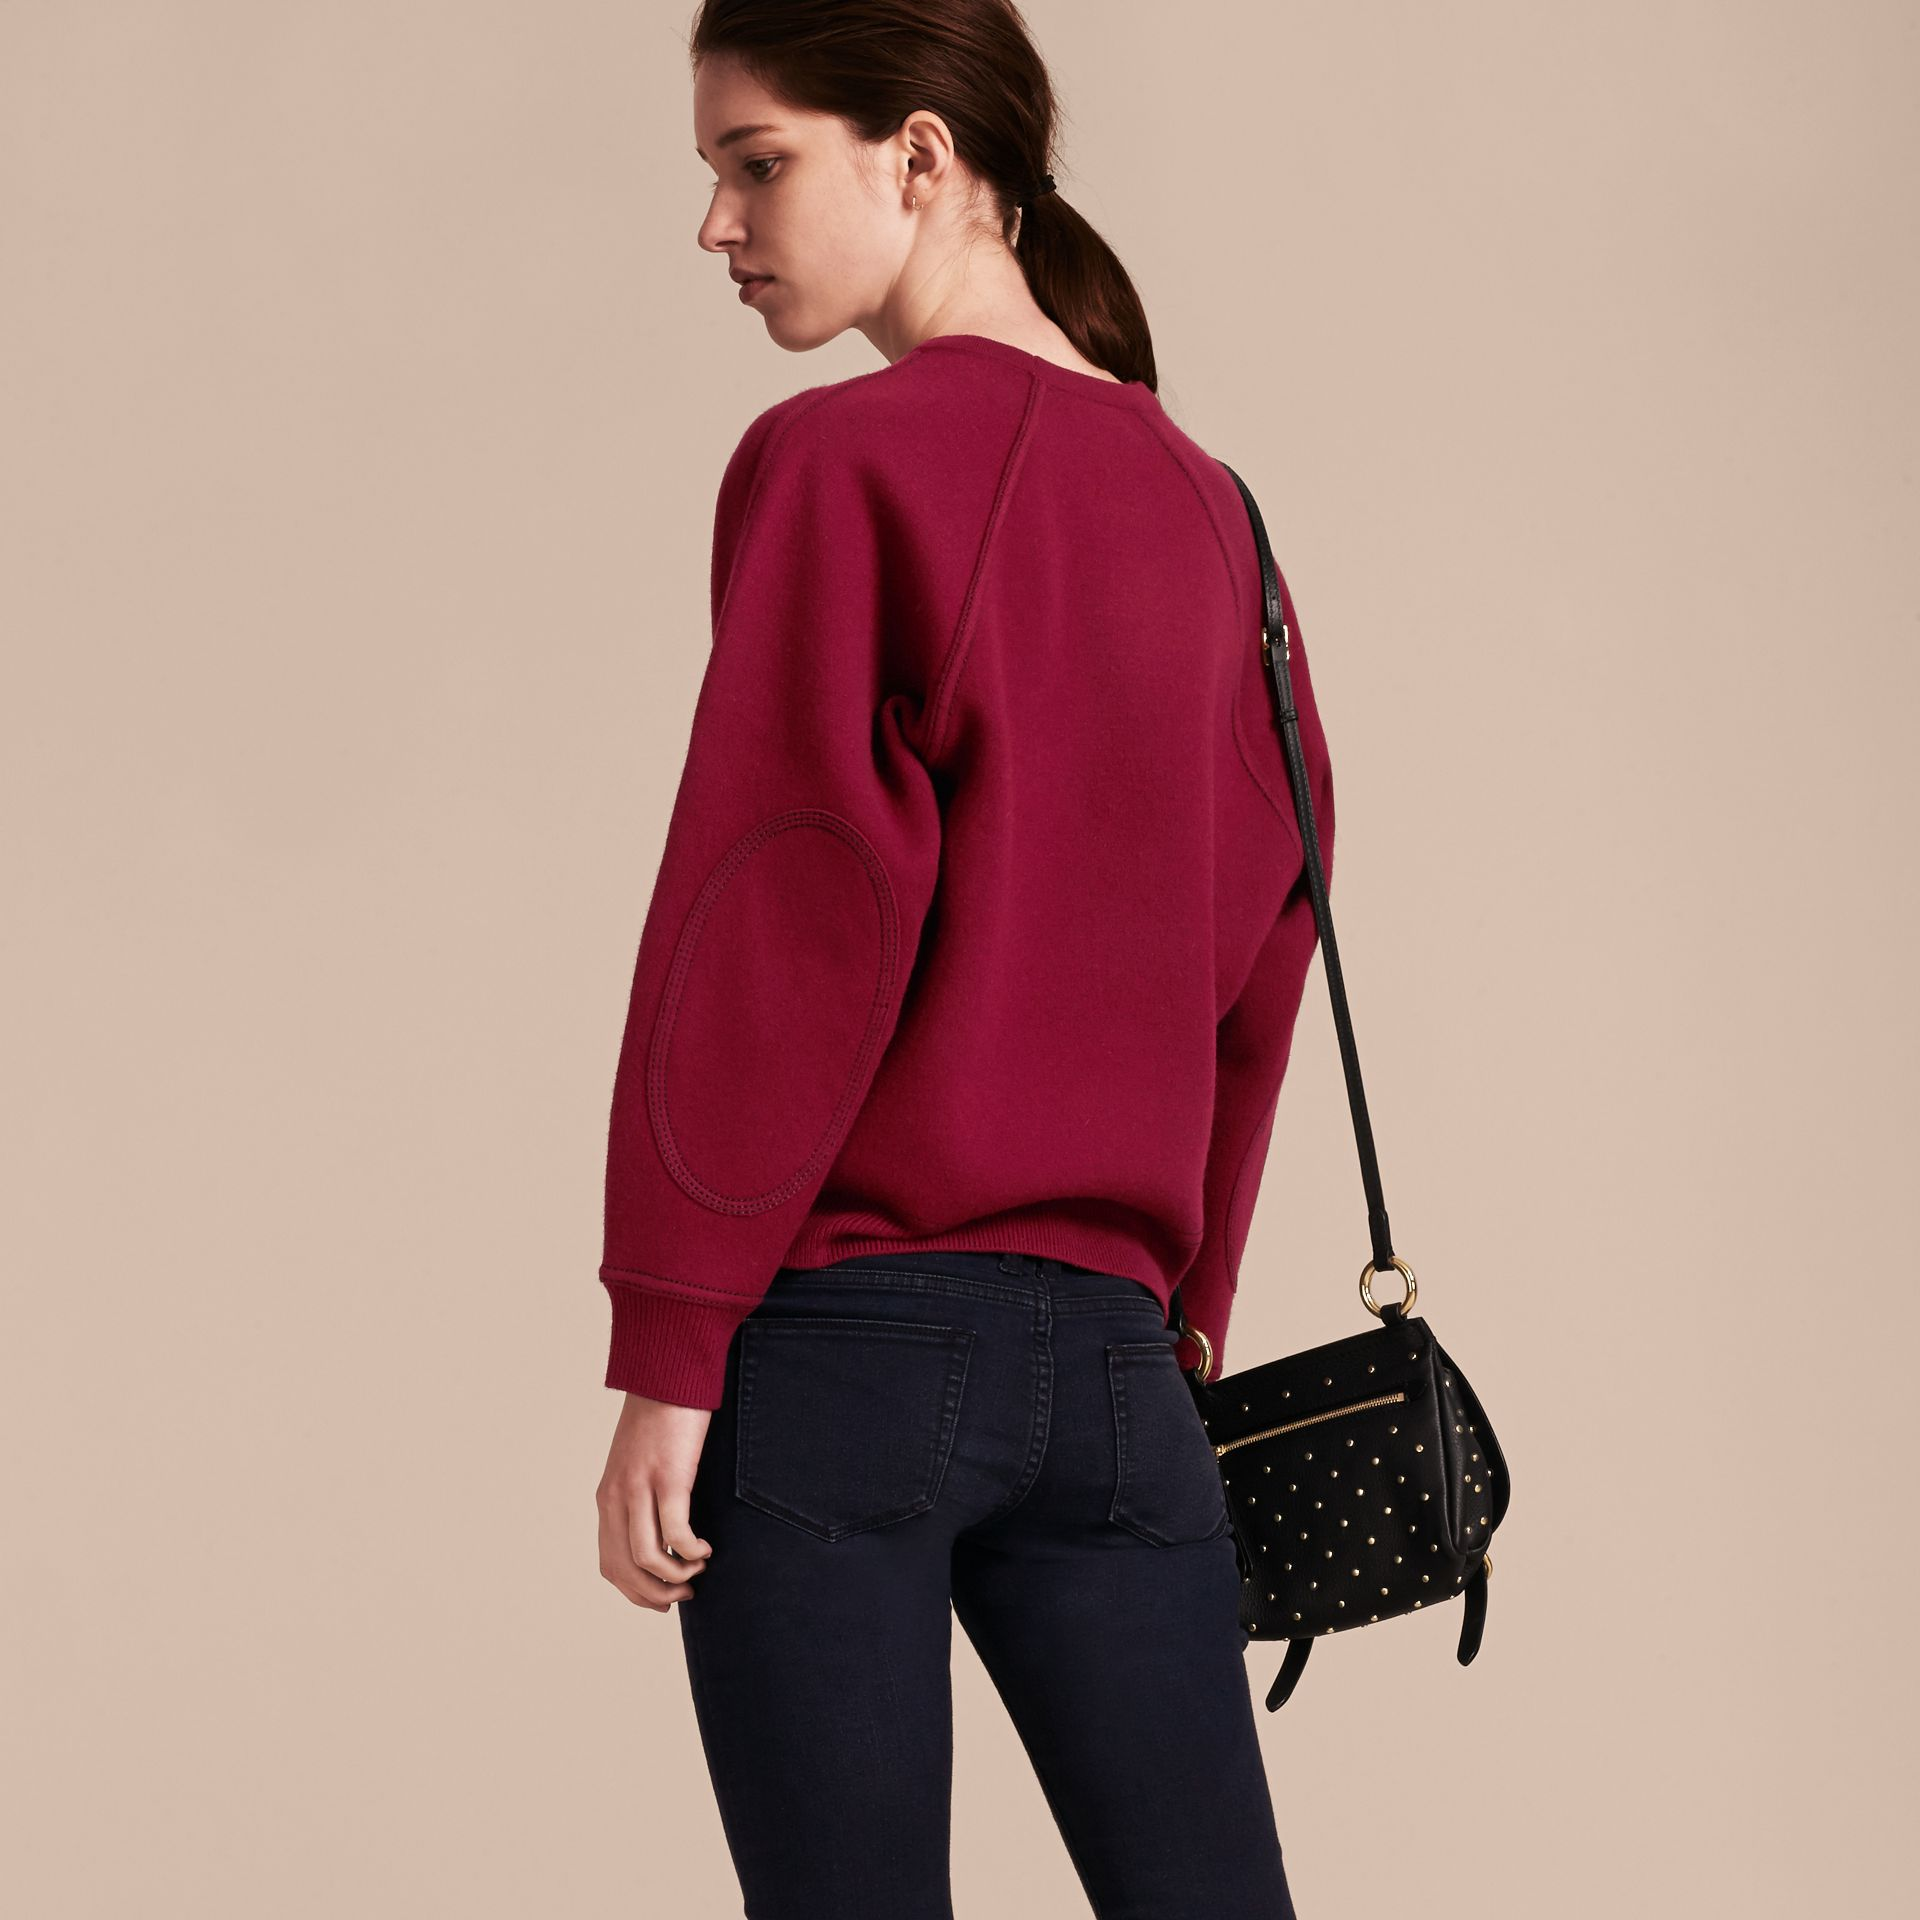 Topstitch Detail Wool Cashmere Blend Sweater in Burgundy - Women | Burberry Canada - gallery image 3